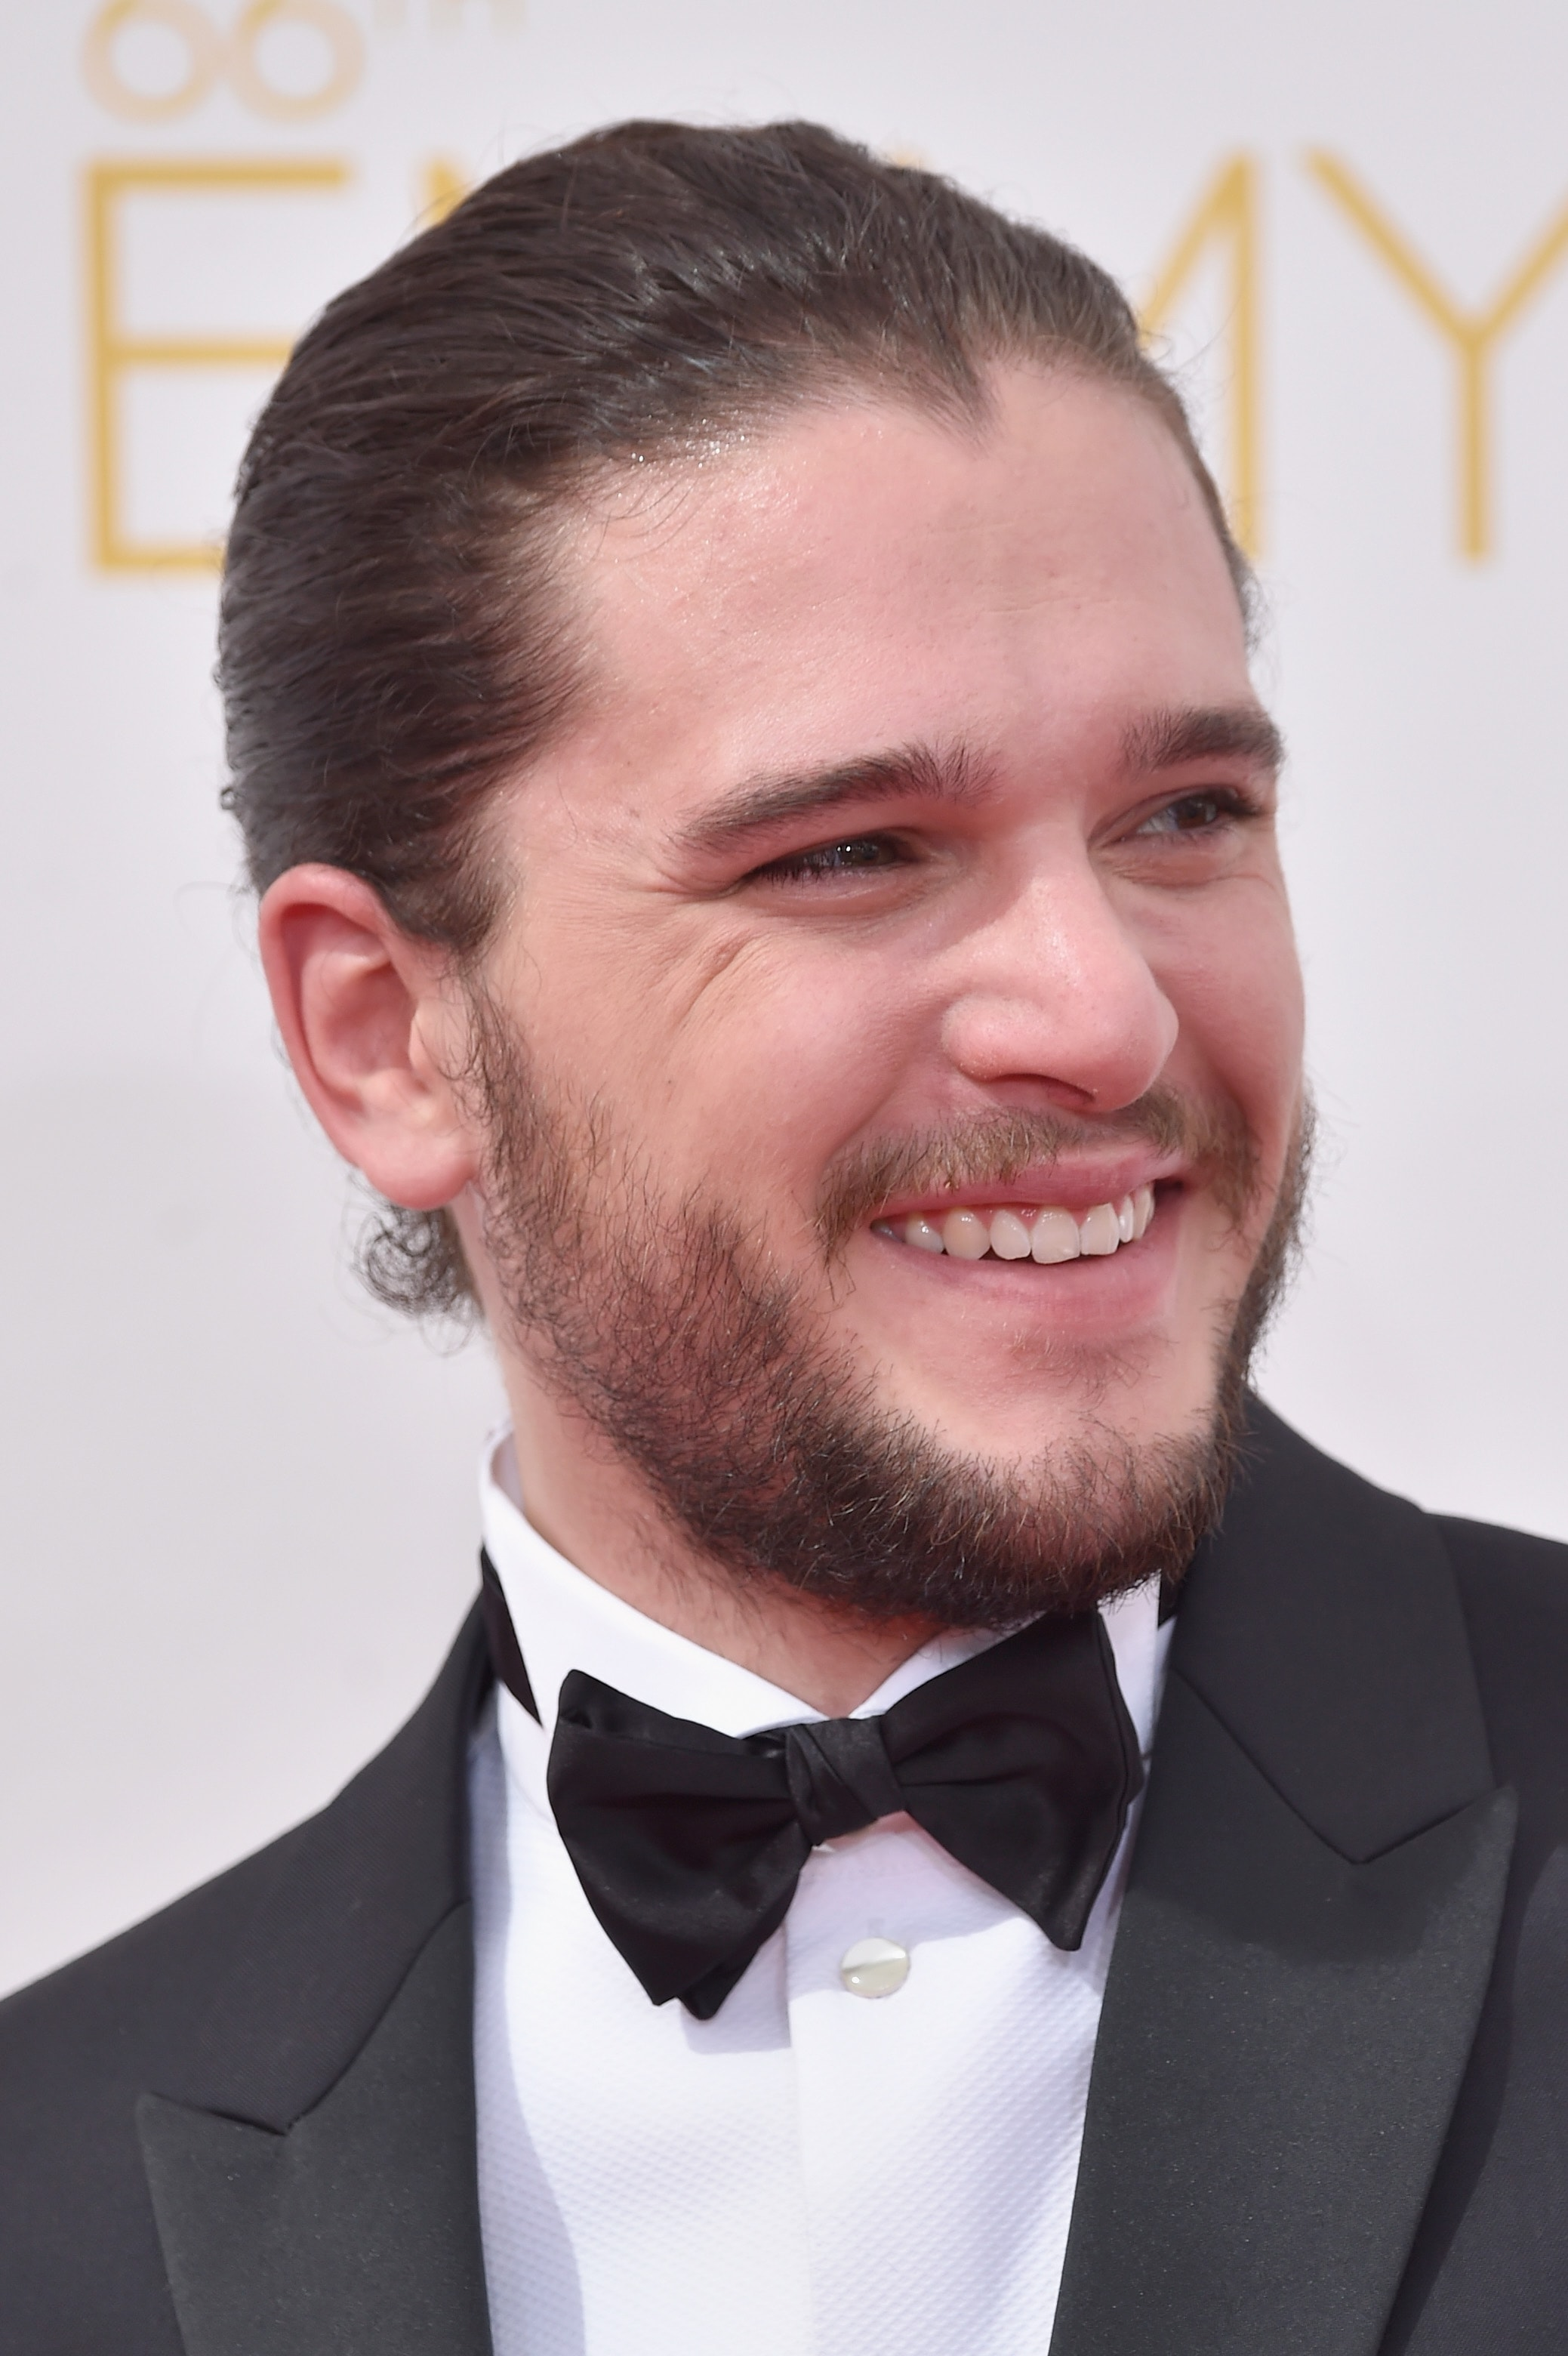 LOS ANGELES, CA - AUGUST 25:  Actor Kit Harington attends the 66th Annual Primetime Emmy Awards held at Nokia Theatre L.A. Live on August 25, 2014 in Los Angeles, California.  (Photo by Frazer Harrison/Getty Images)